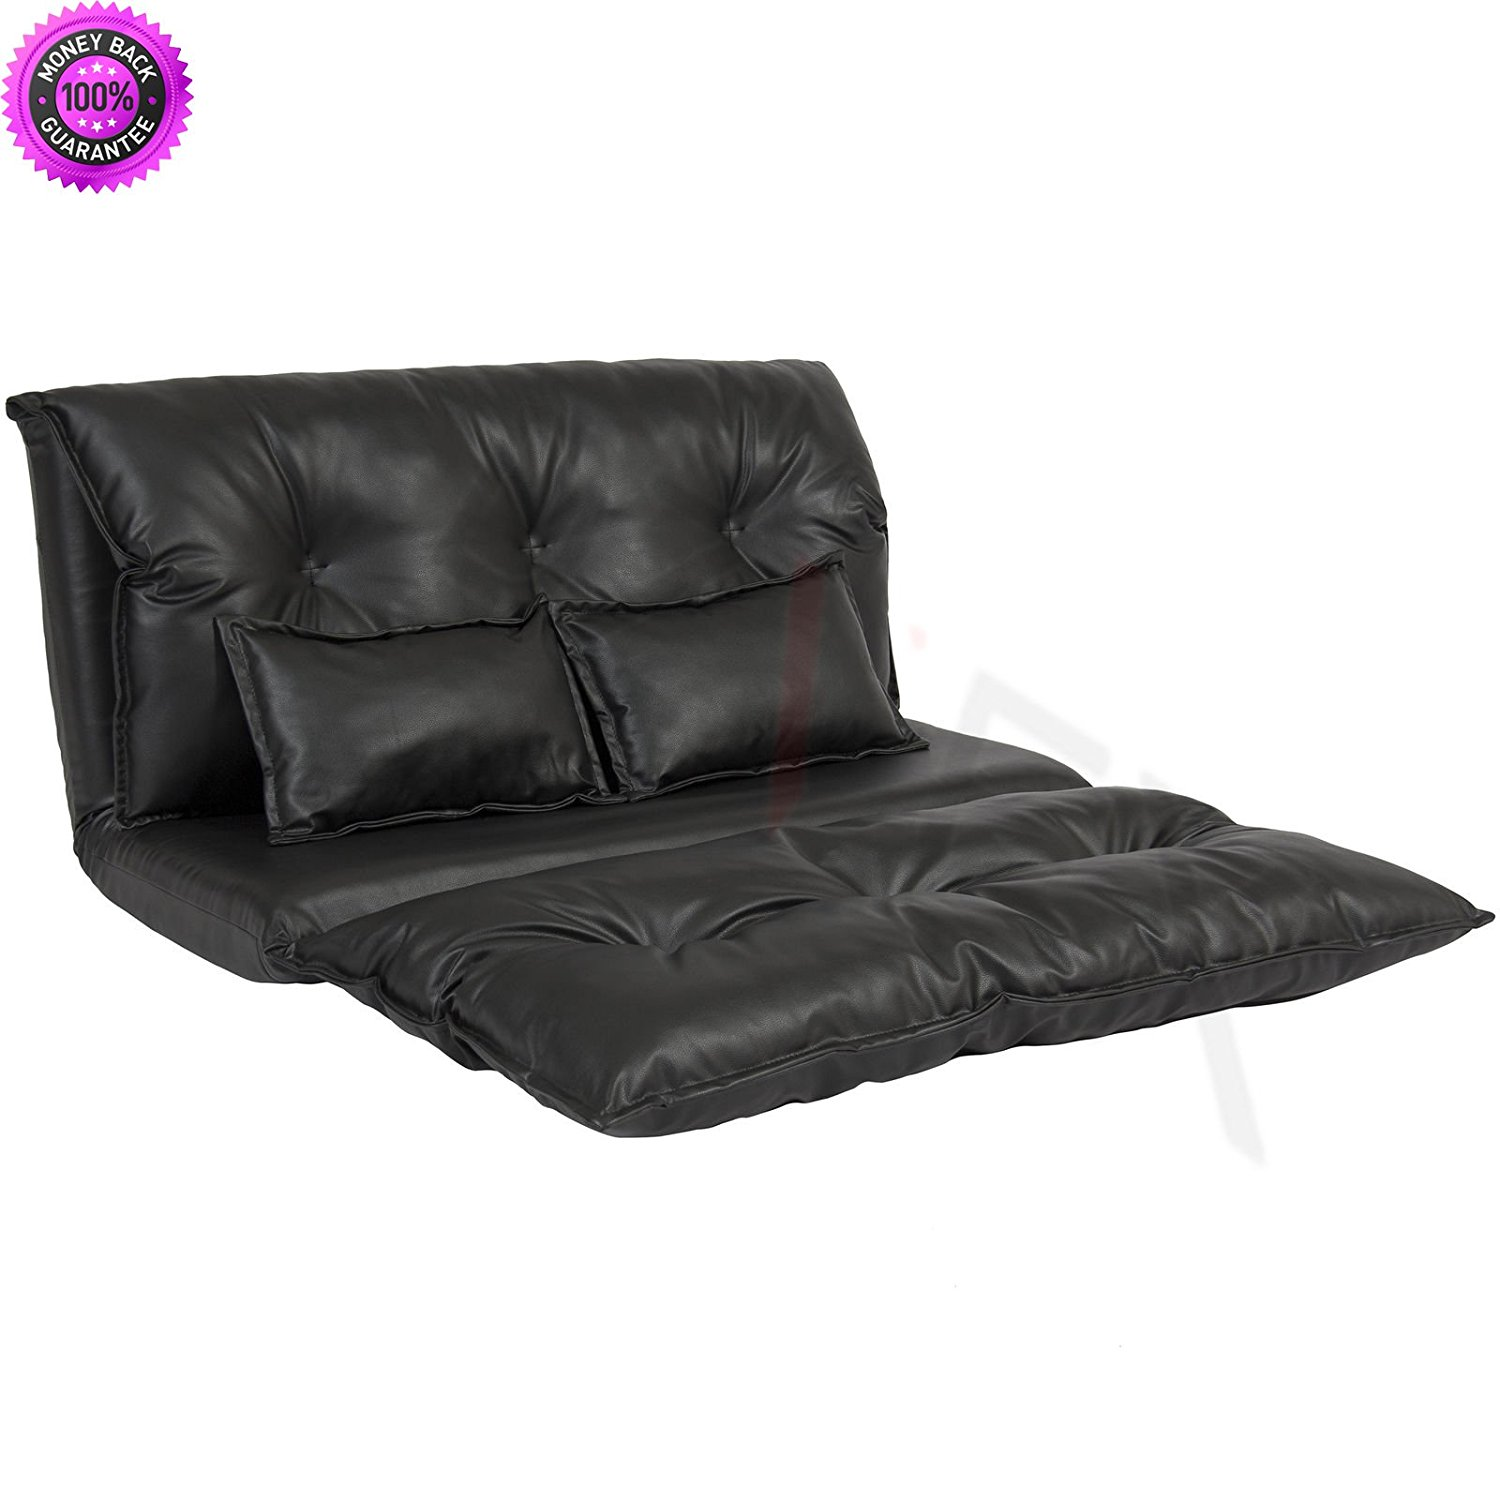 Cheap Leather Sofa Sale, find Leather Sofa Sale deals on ...